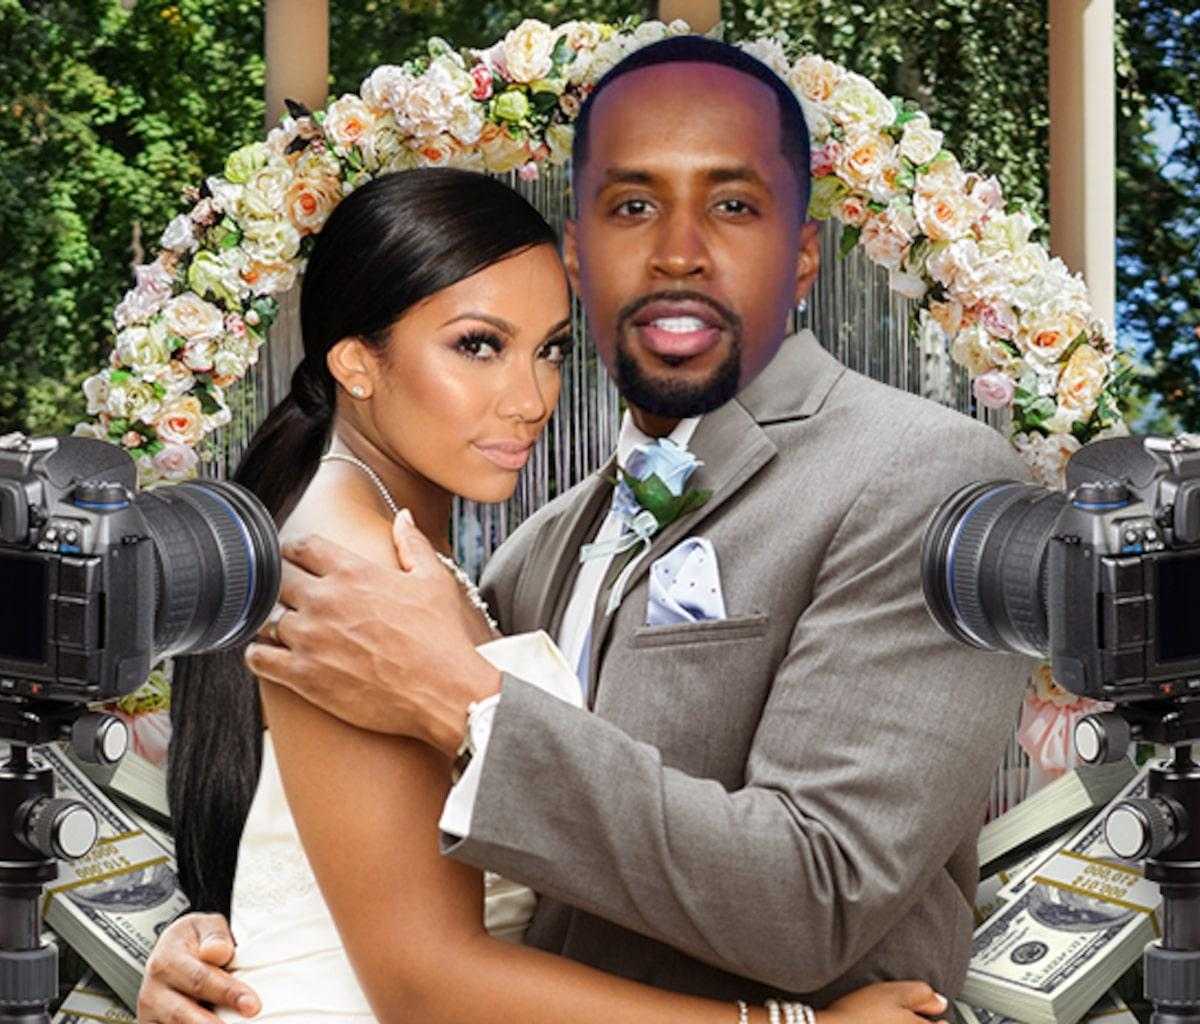 Safaree And Erica Mena Will Sit Down With Fans This Weekend To Empower Them During These Difficult Times